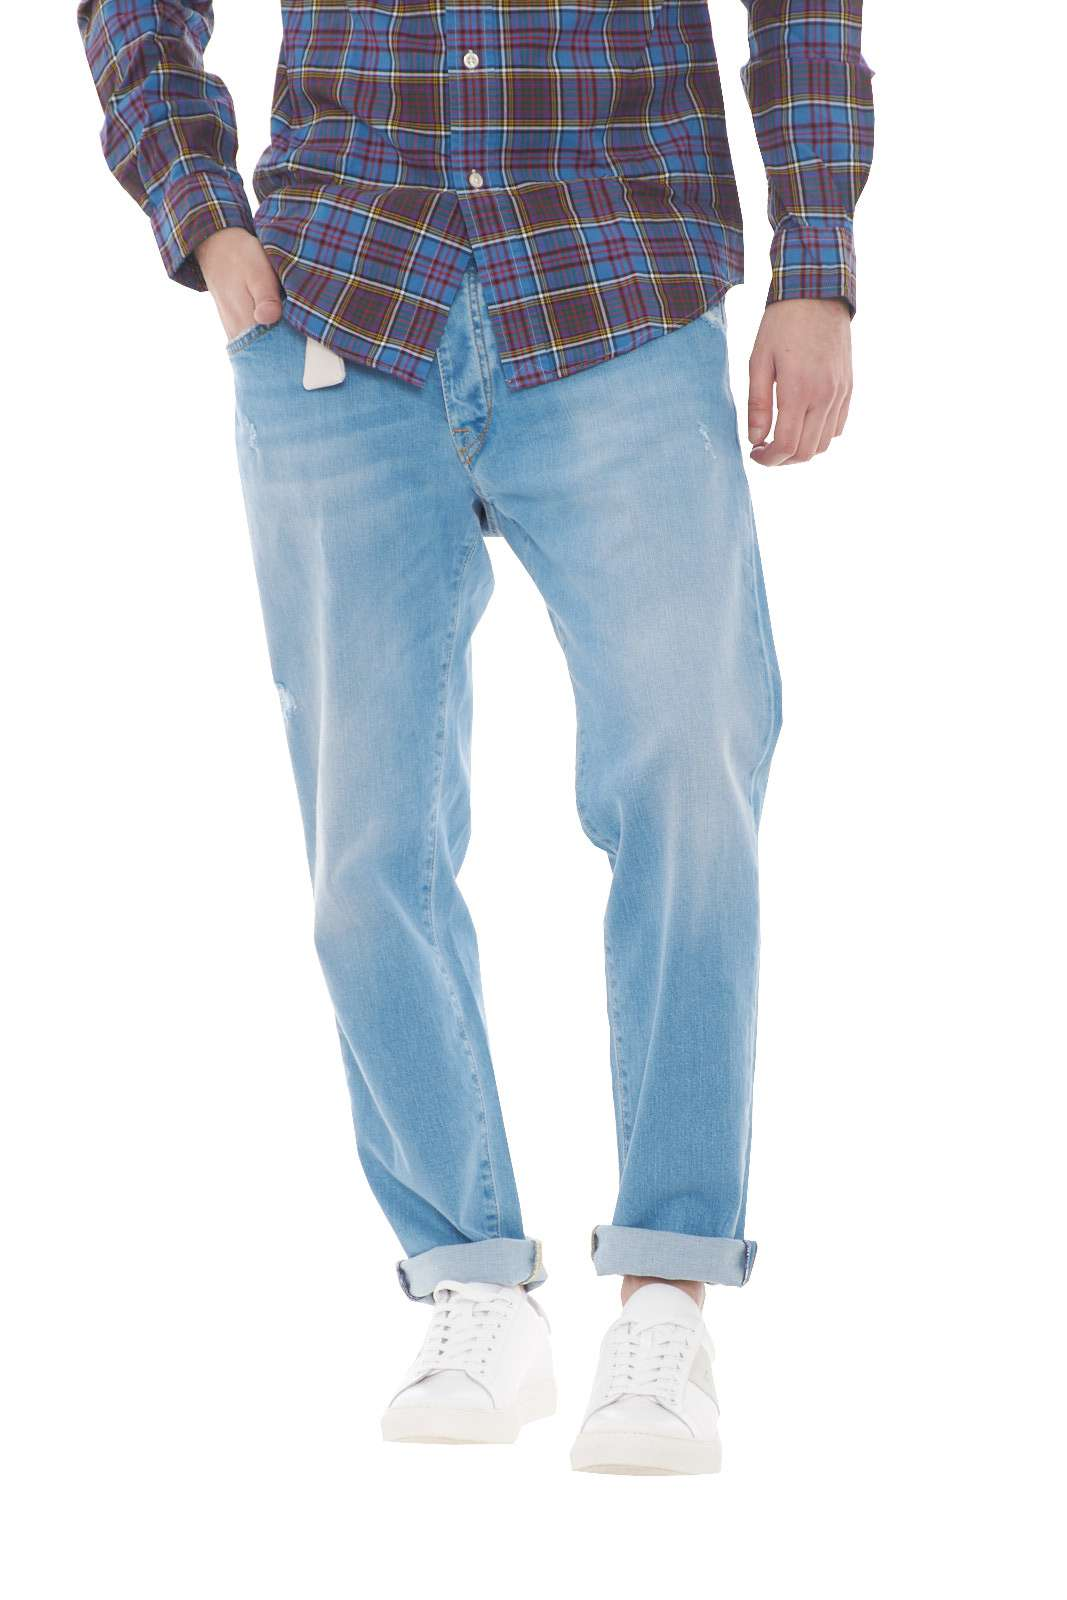 https://www.parmax.com/media/catalog/product/a/i/PE-outlet_parmax-denim-uomo-Mc-Denimerie-DAVID1073-A.jpg